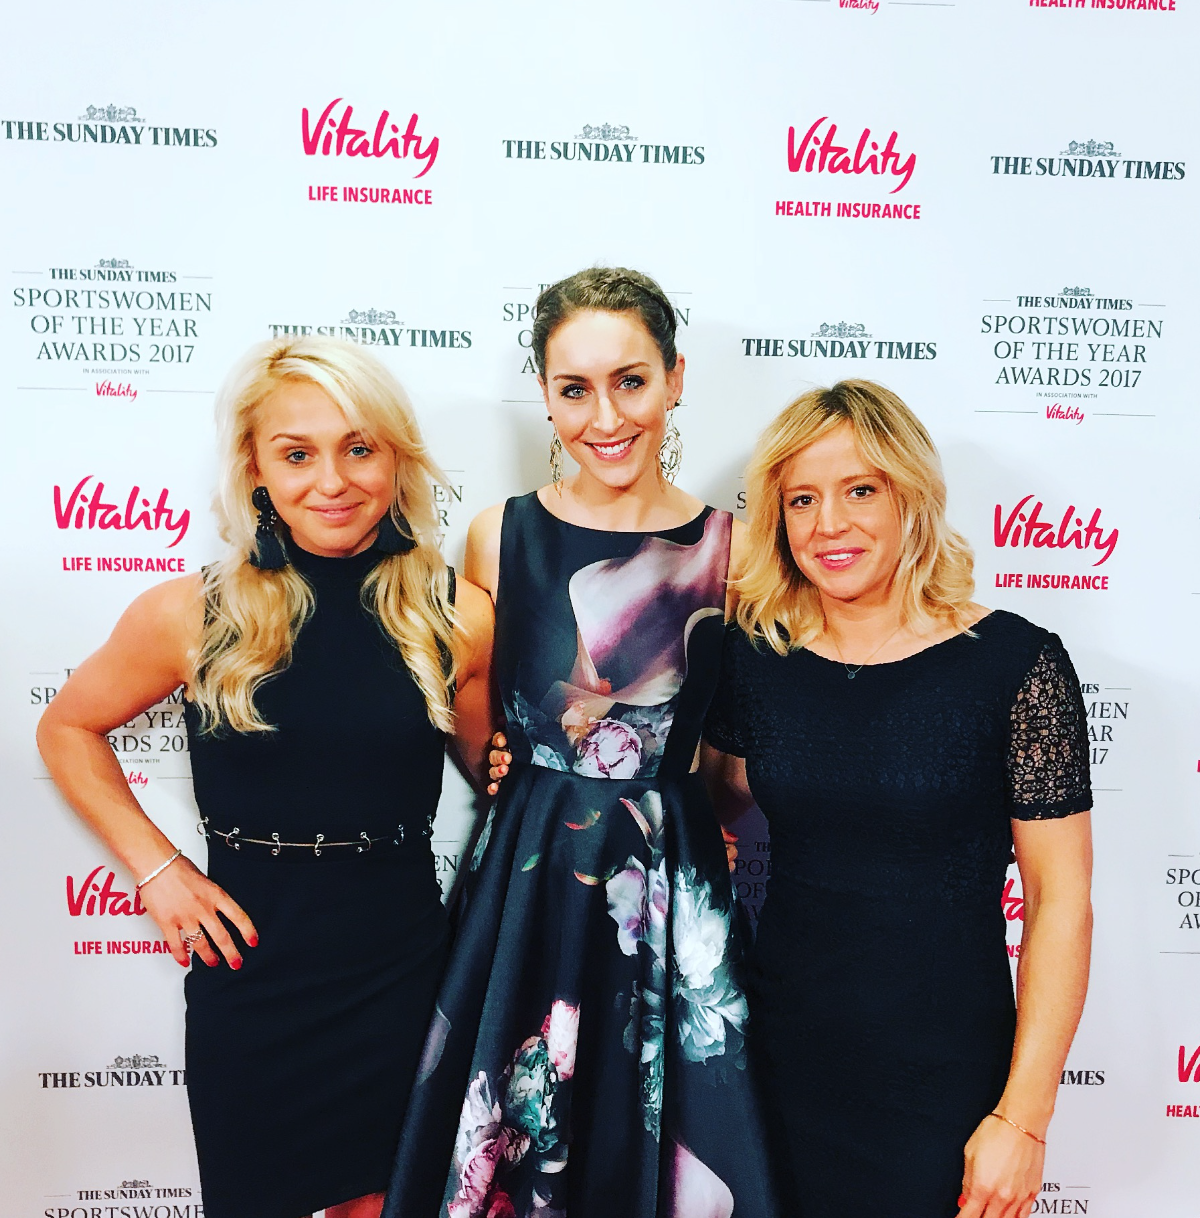 With AMY WILLIAMS, and JENNY JONES at SWOTY 17.